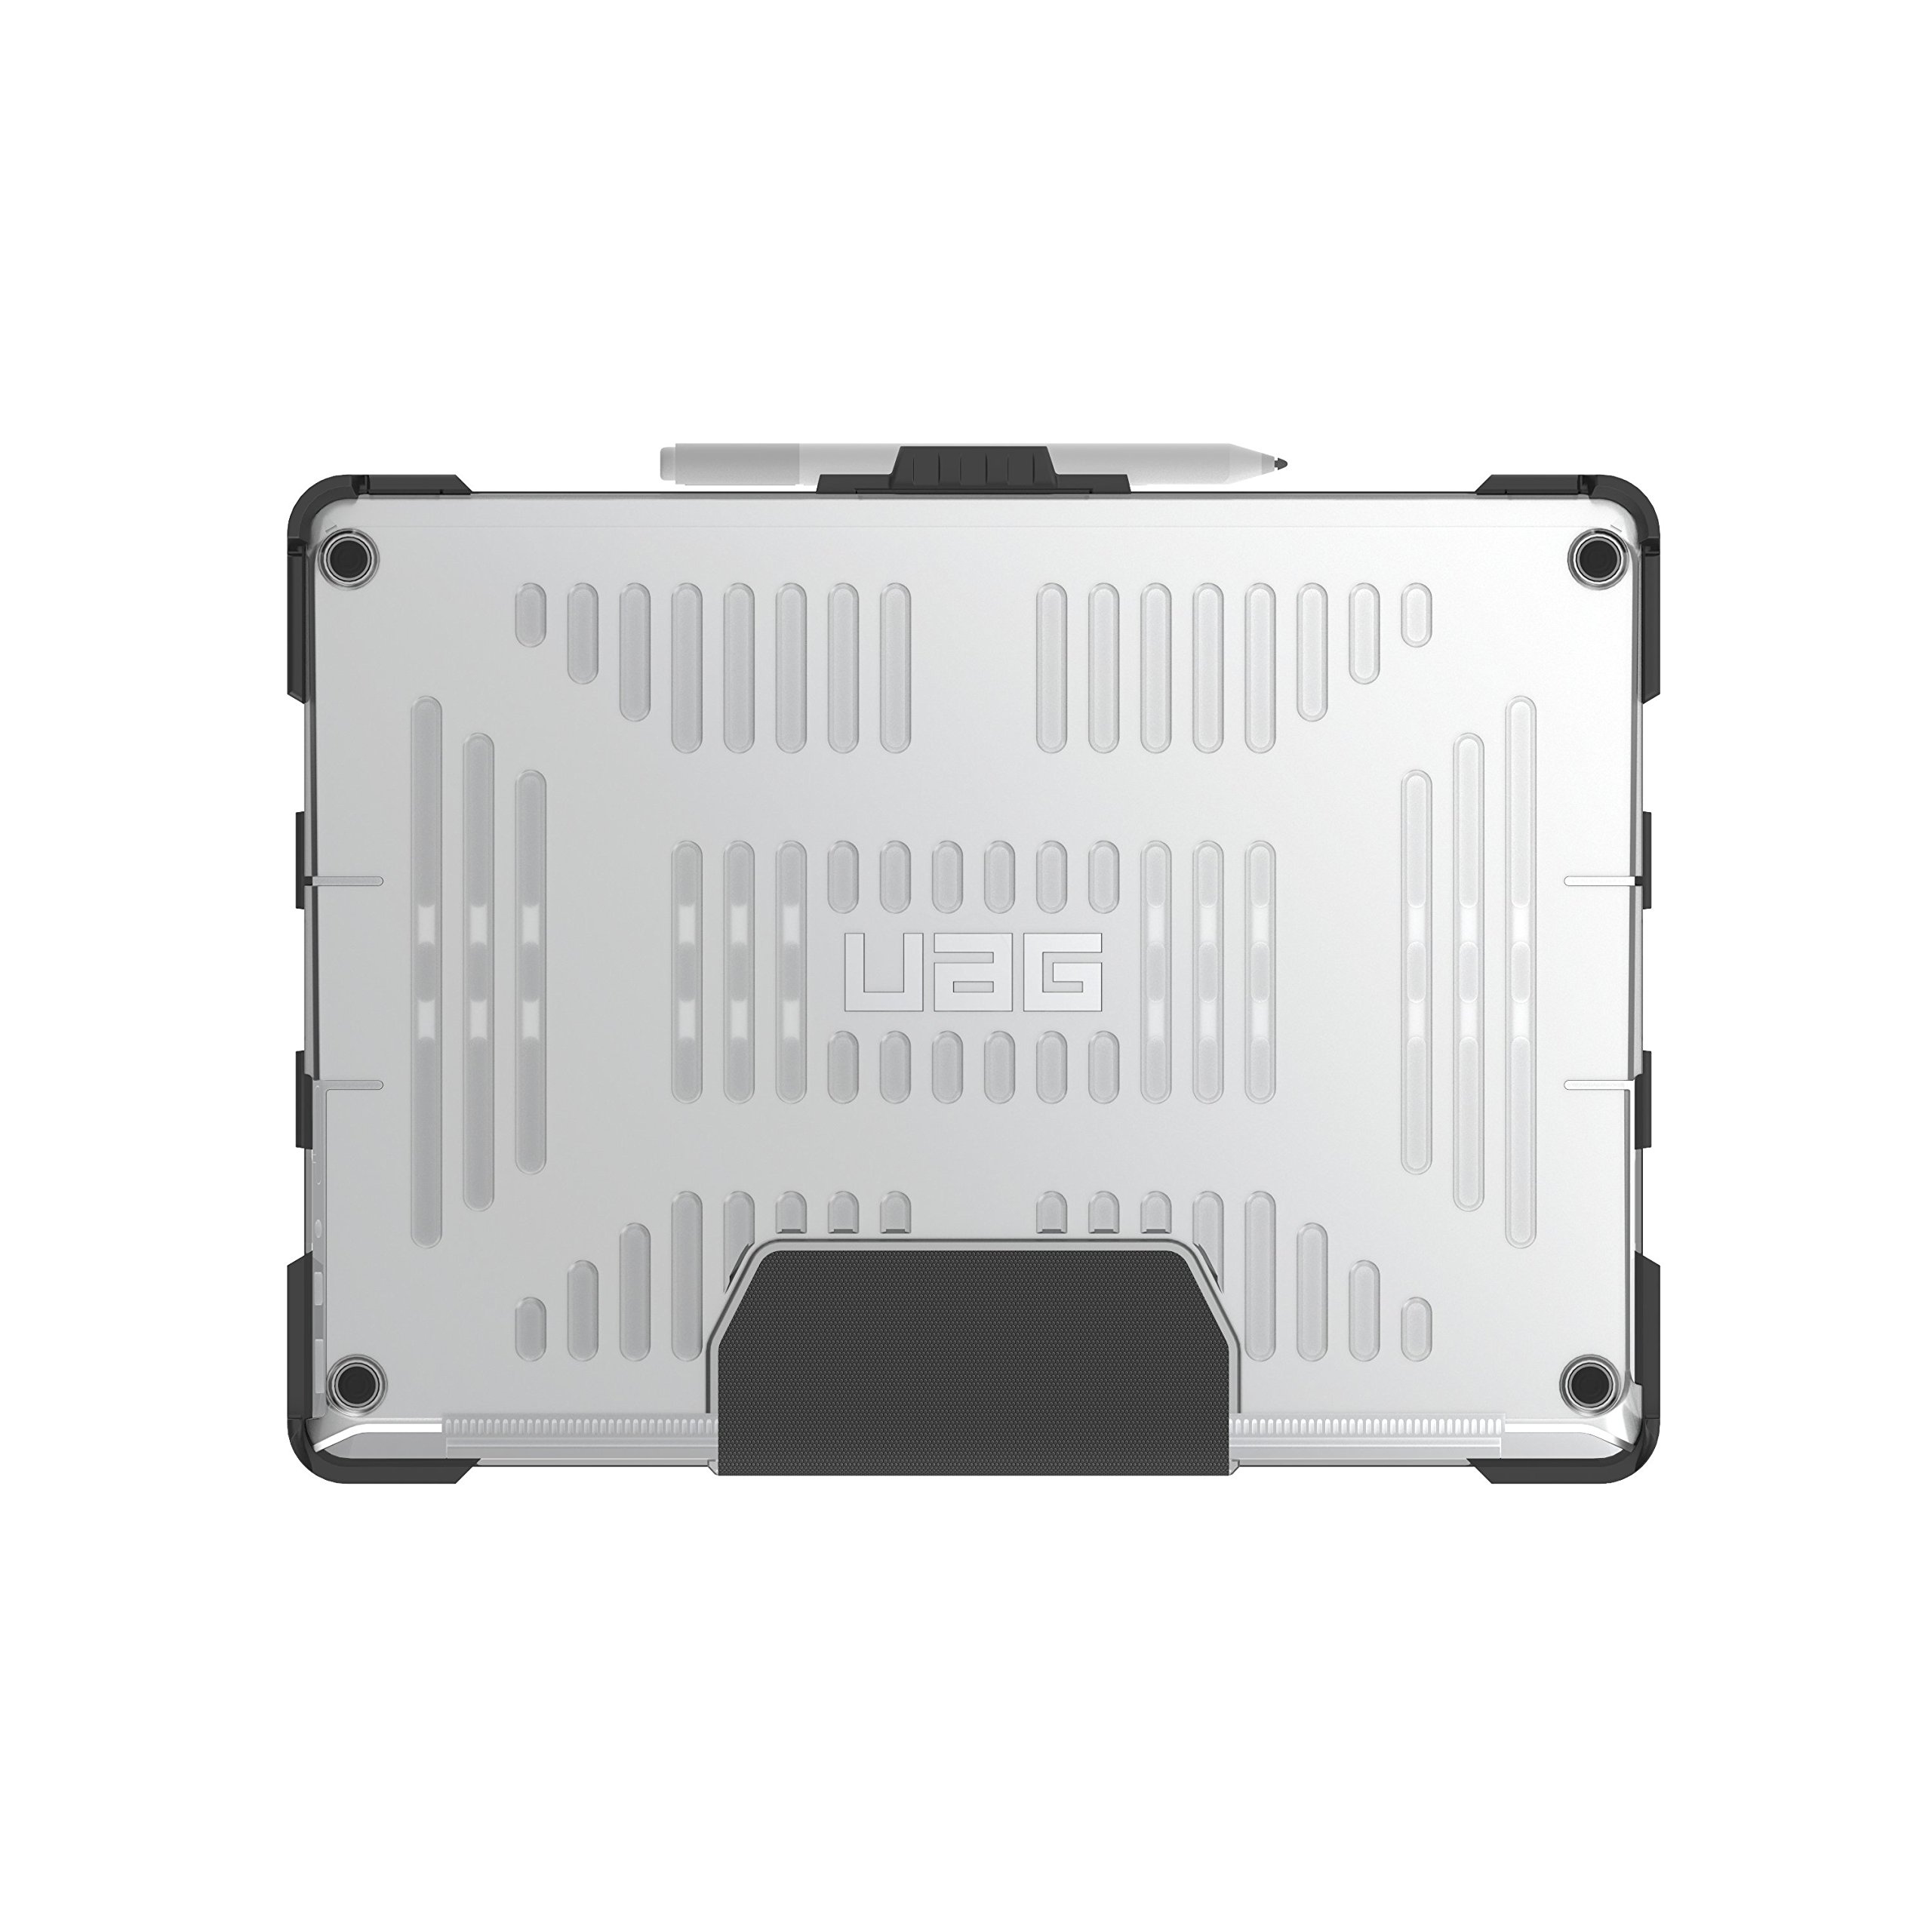 UAG Microsoft Surface Laptop 2/Surface Laptop Feather-Light Rugged [Ice] Military Drop Tested Laptop Case by URBAN ARMOR GEAR (Image #8)